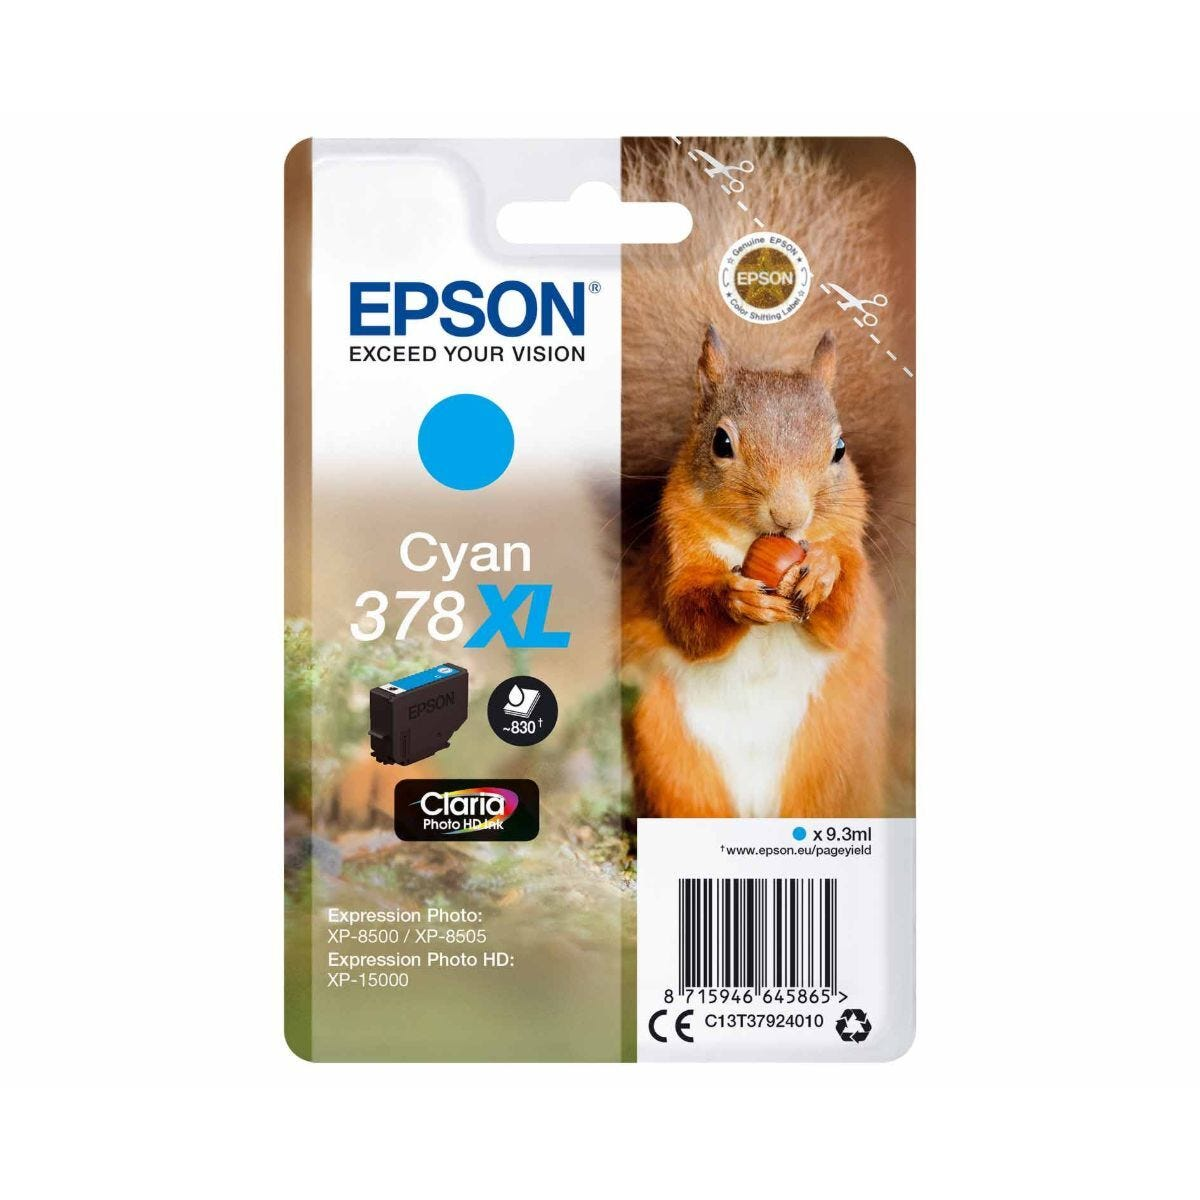 Epson 378XL Cyan Squirrel Original Ink Cartridge